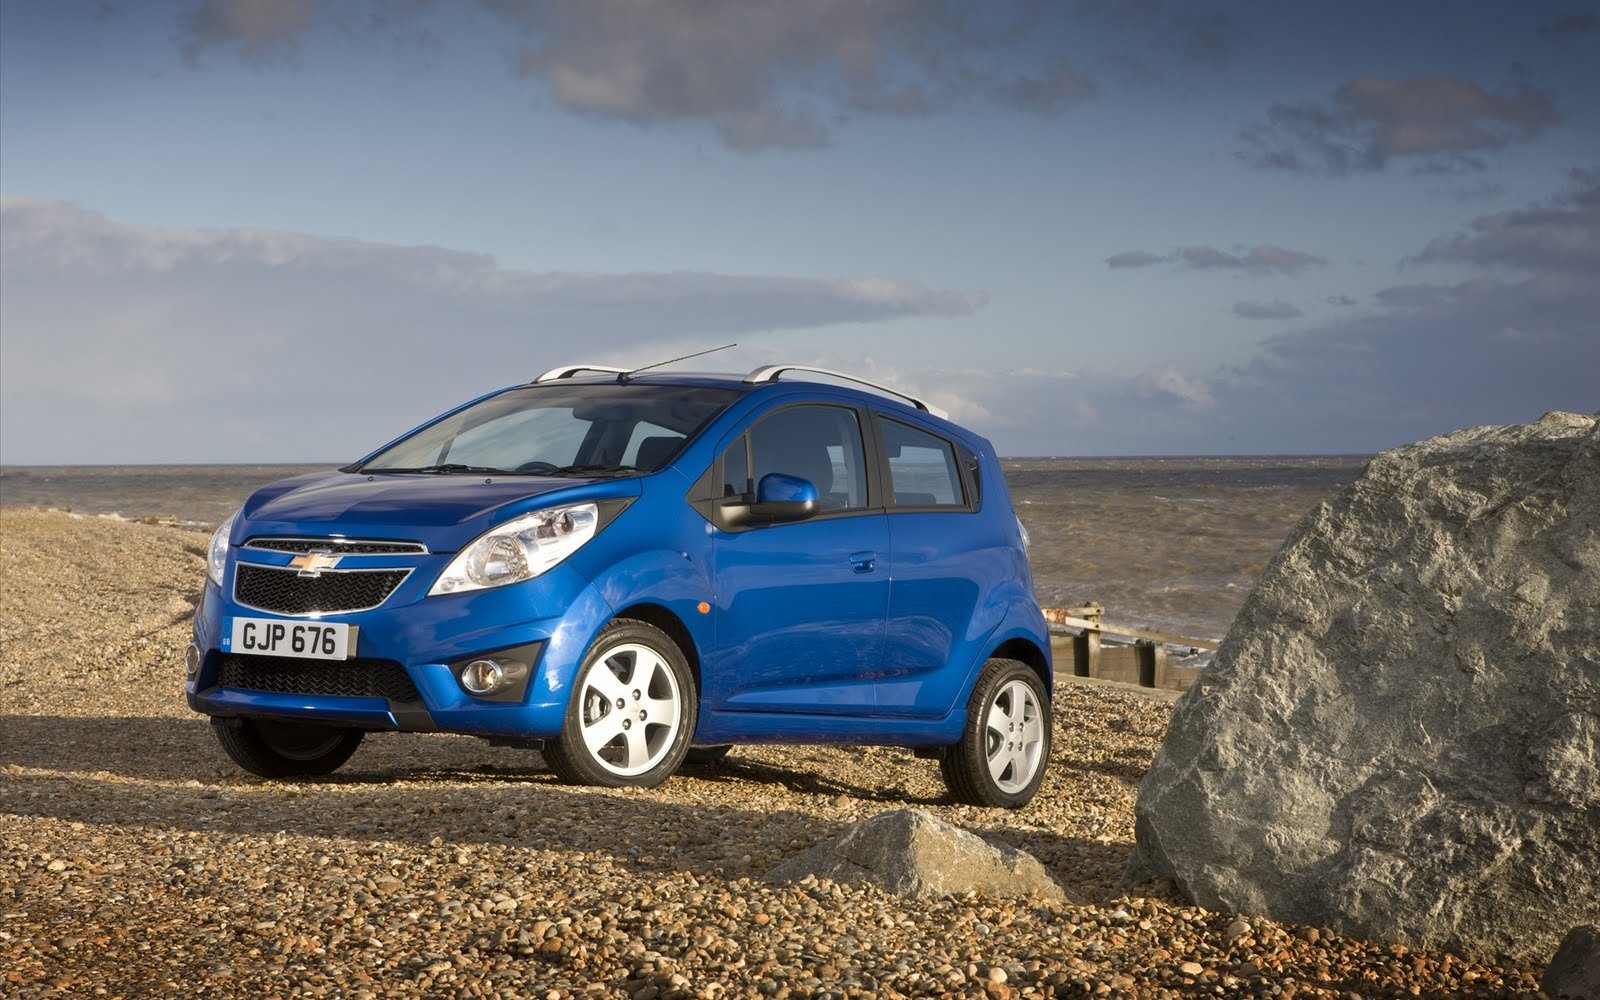 2010 Chevrolet Spark Car World Engine Origin Across Europe Two Engines Will Be Offered In The Both Petrol Units With Displacements Of 10 And 12 Litres